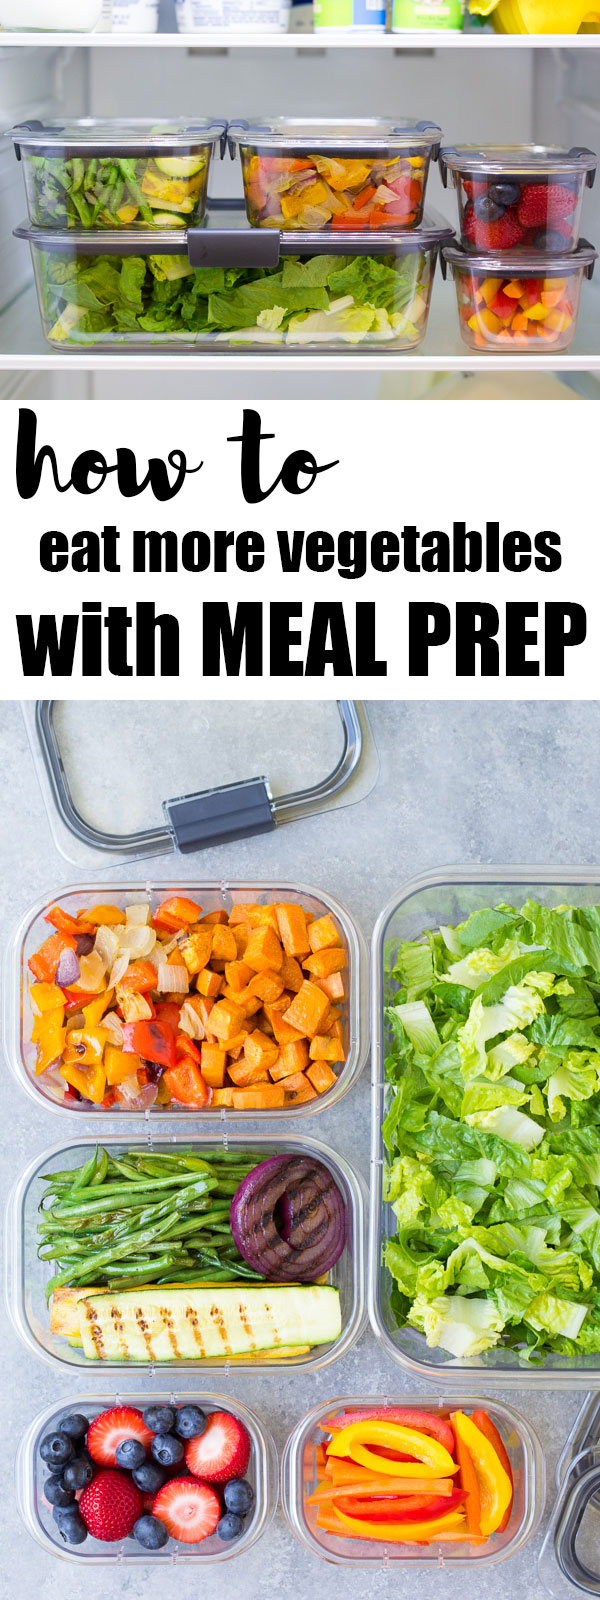 How to eat more vegetables and fruits with meal prep. You'll eat much more fresh produce when it's ready and visible in your refrigerator! Save time with weekly food prep.